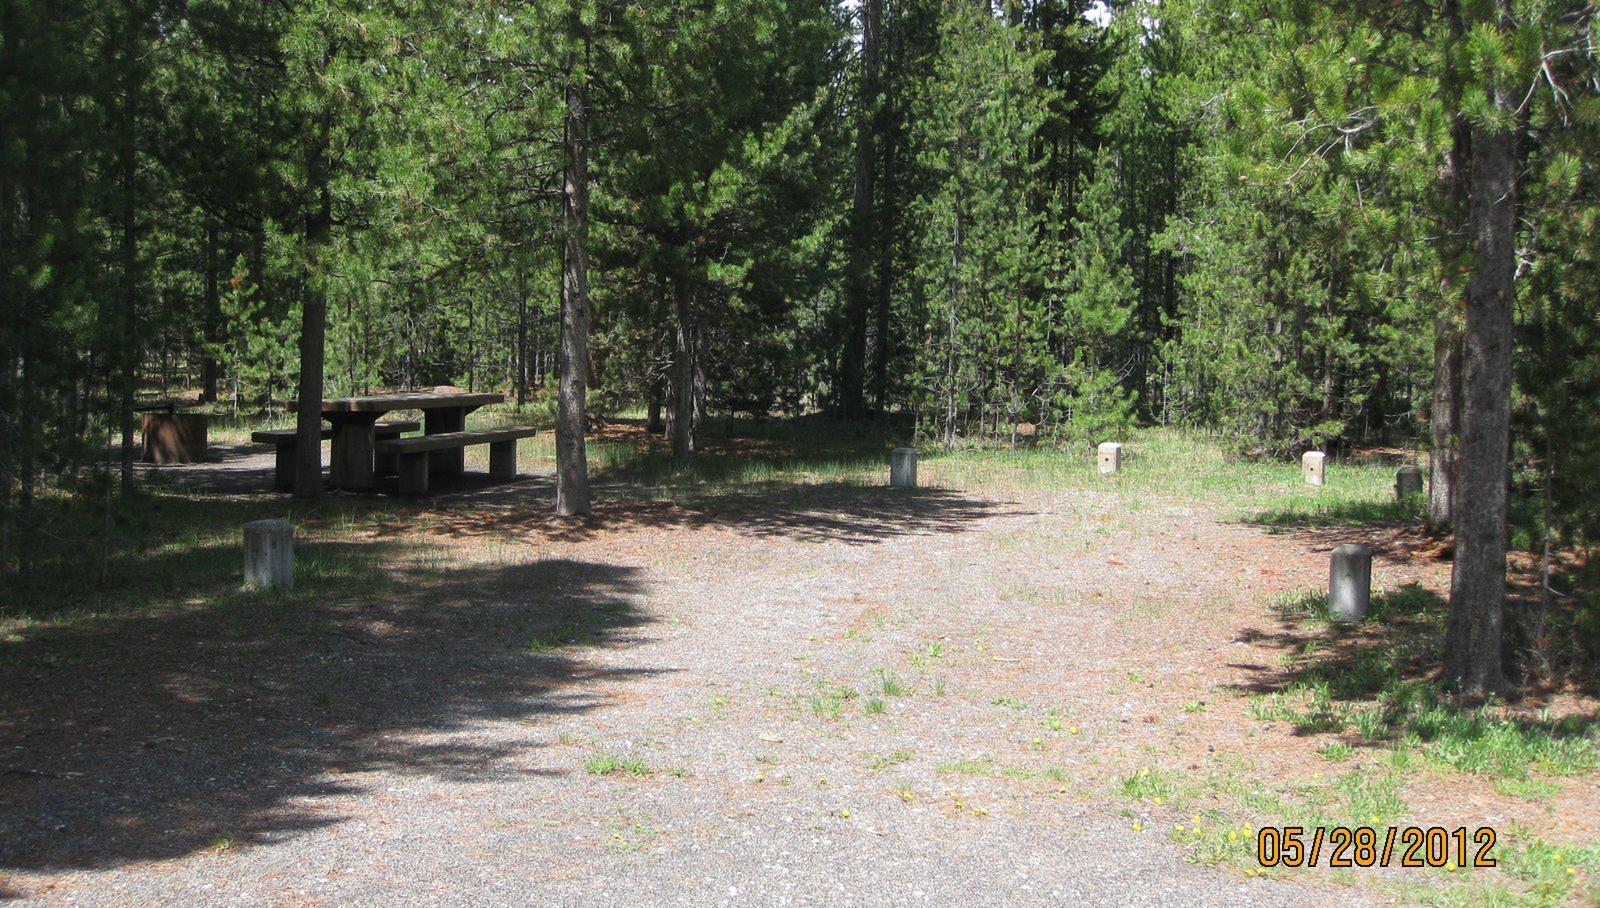 Site C1, surrounded by pine trees, picnic table & fire ringSite C1